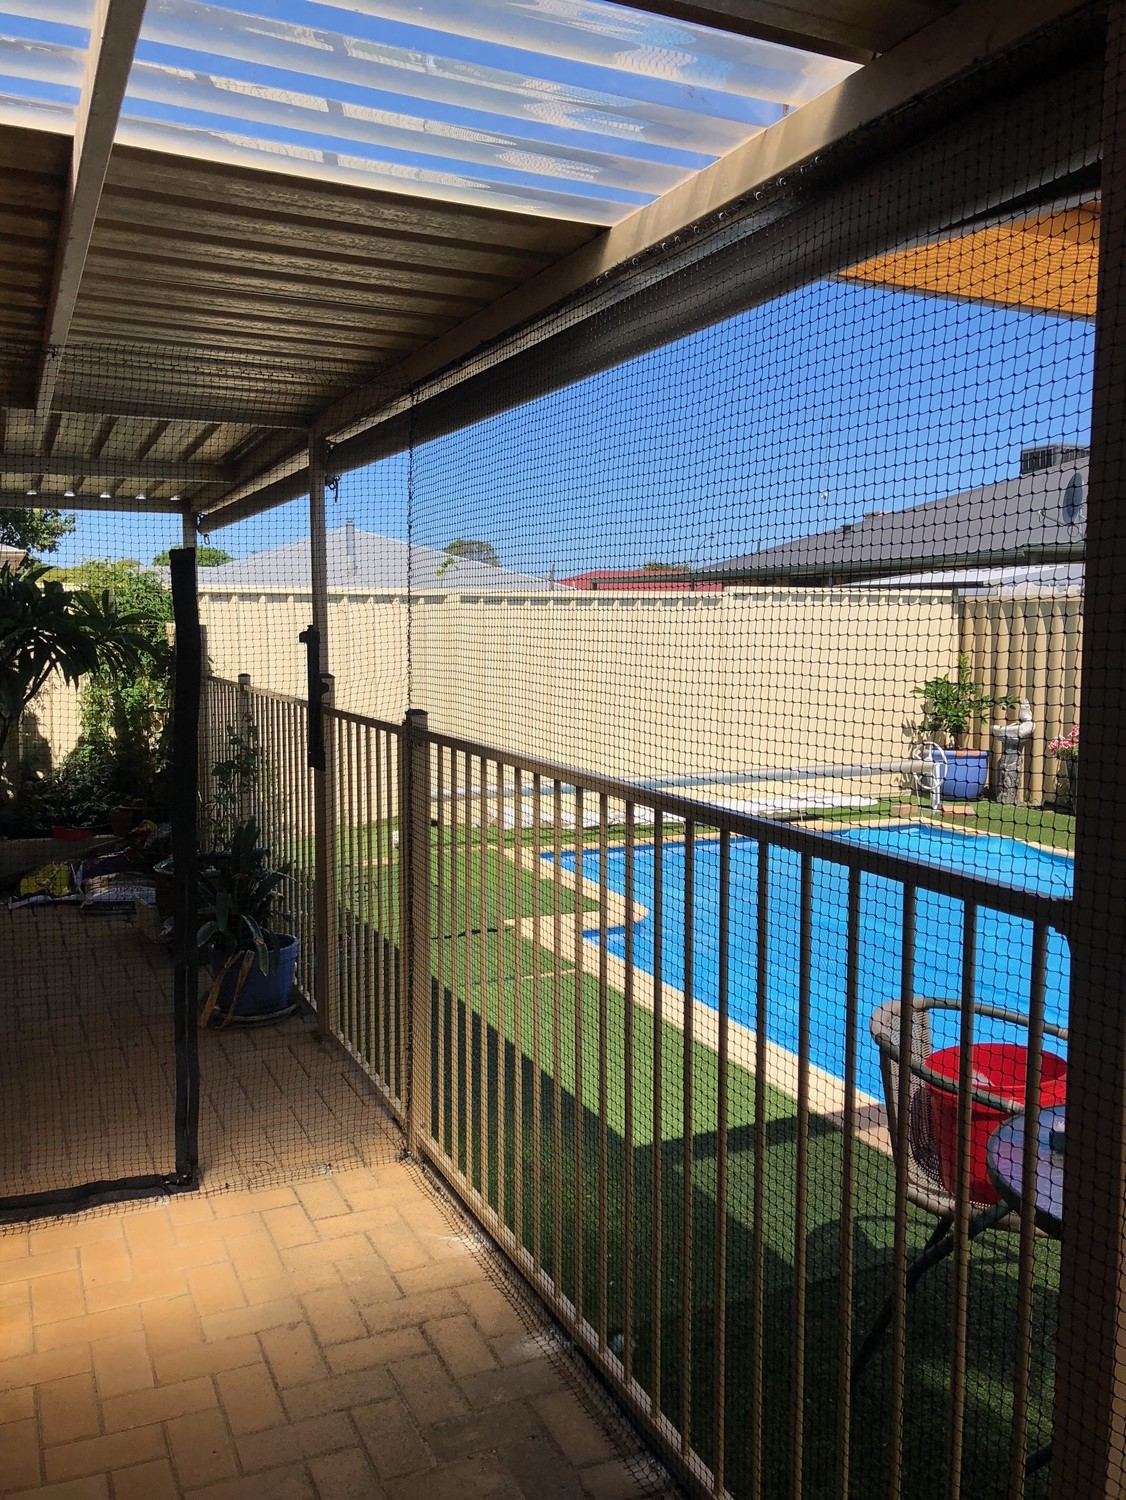 - Pergolas and verandahs can be enclosed to allow cats and other pets into these areas but prevented from exiting to the backyard.